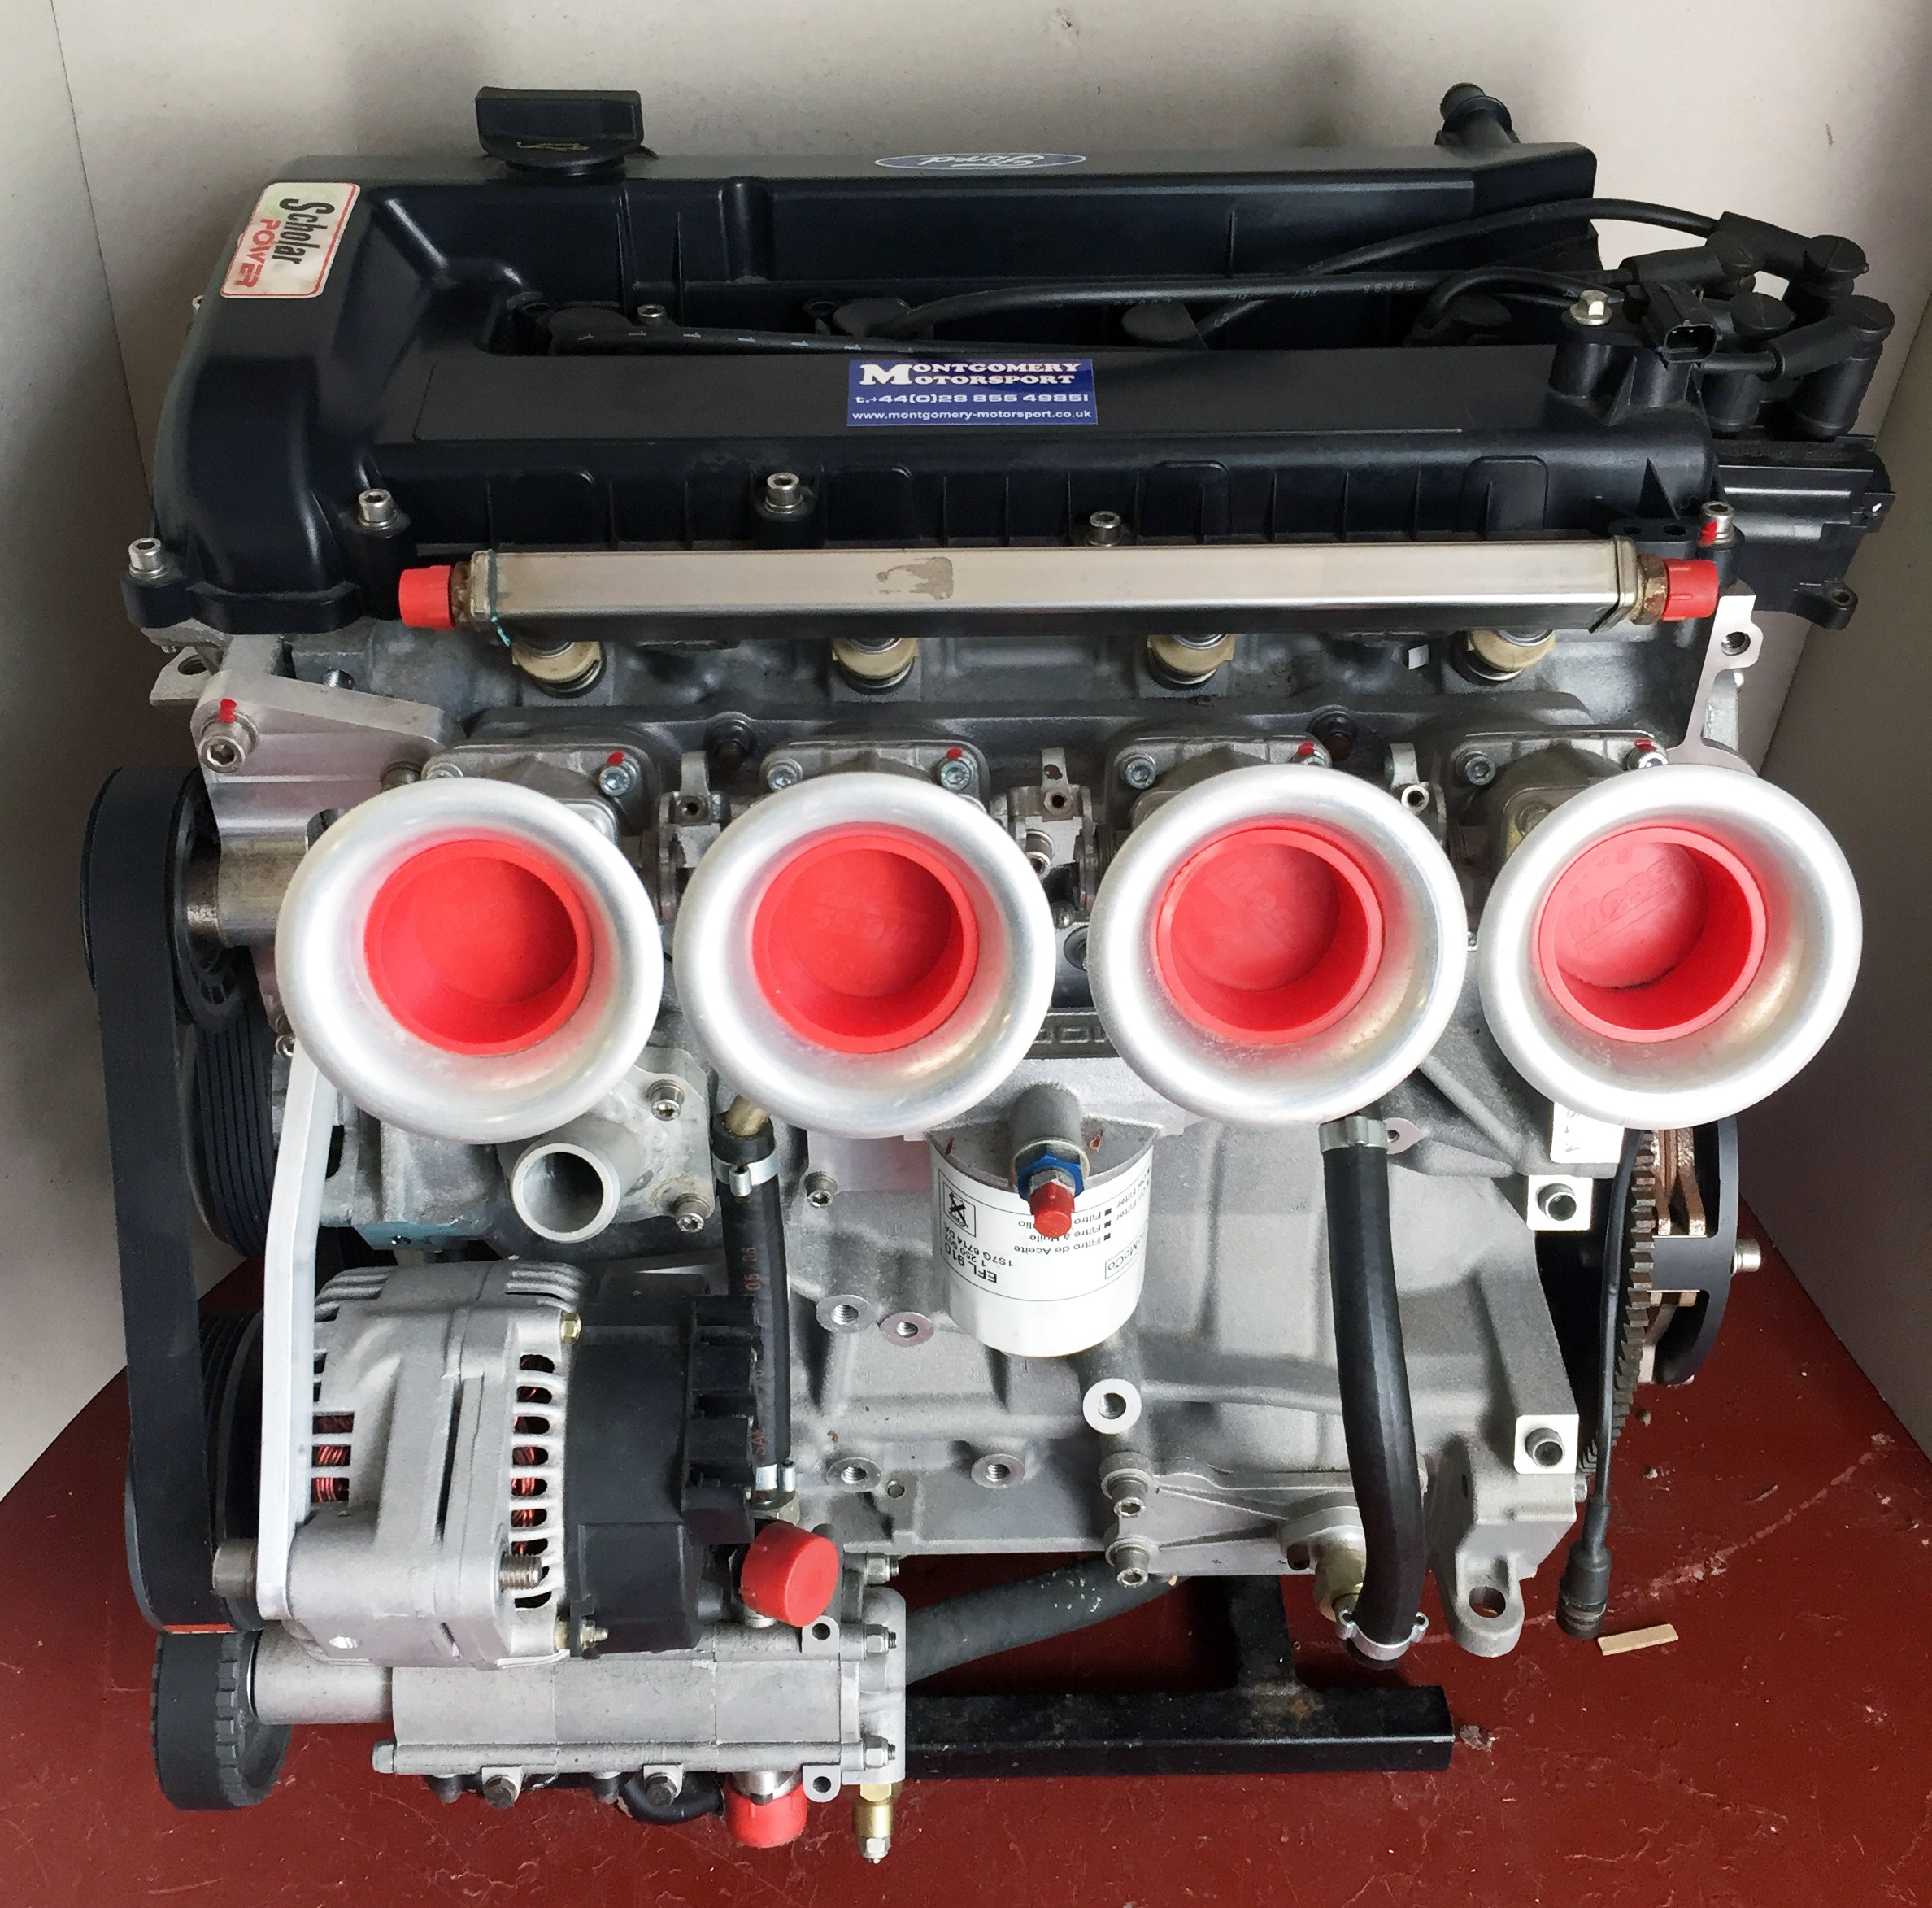 Scholar 1600 All Steel Duratec Engine